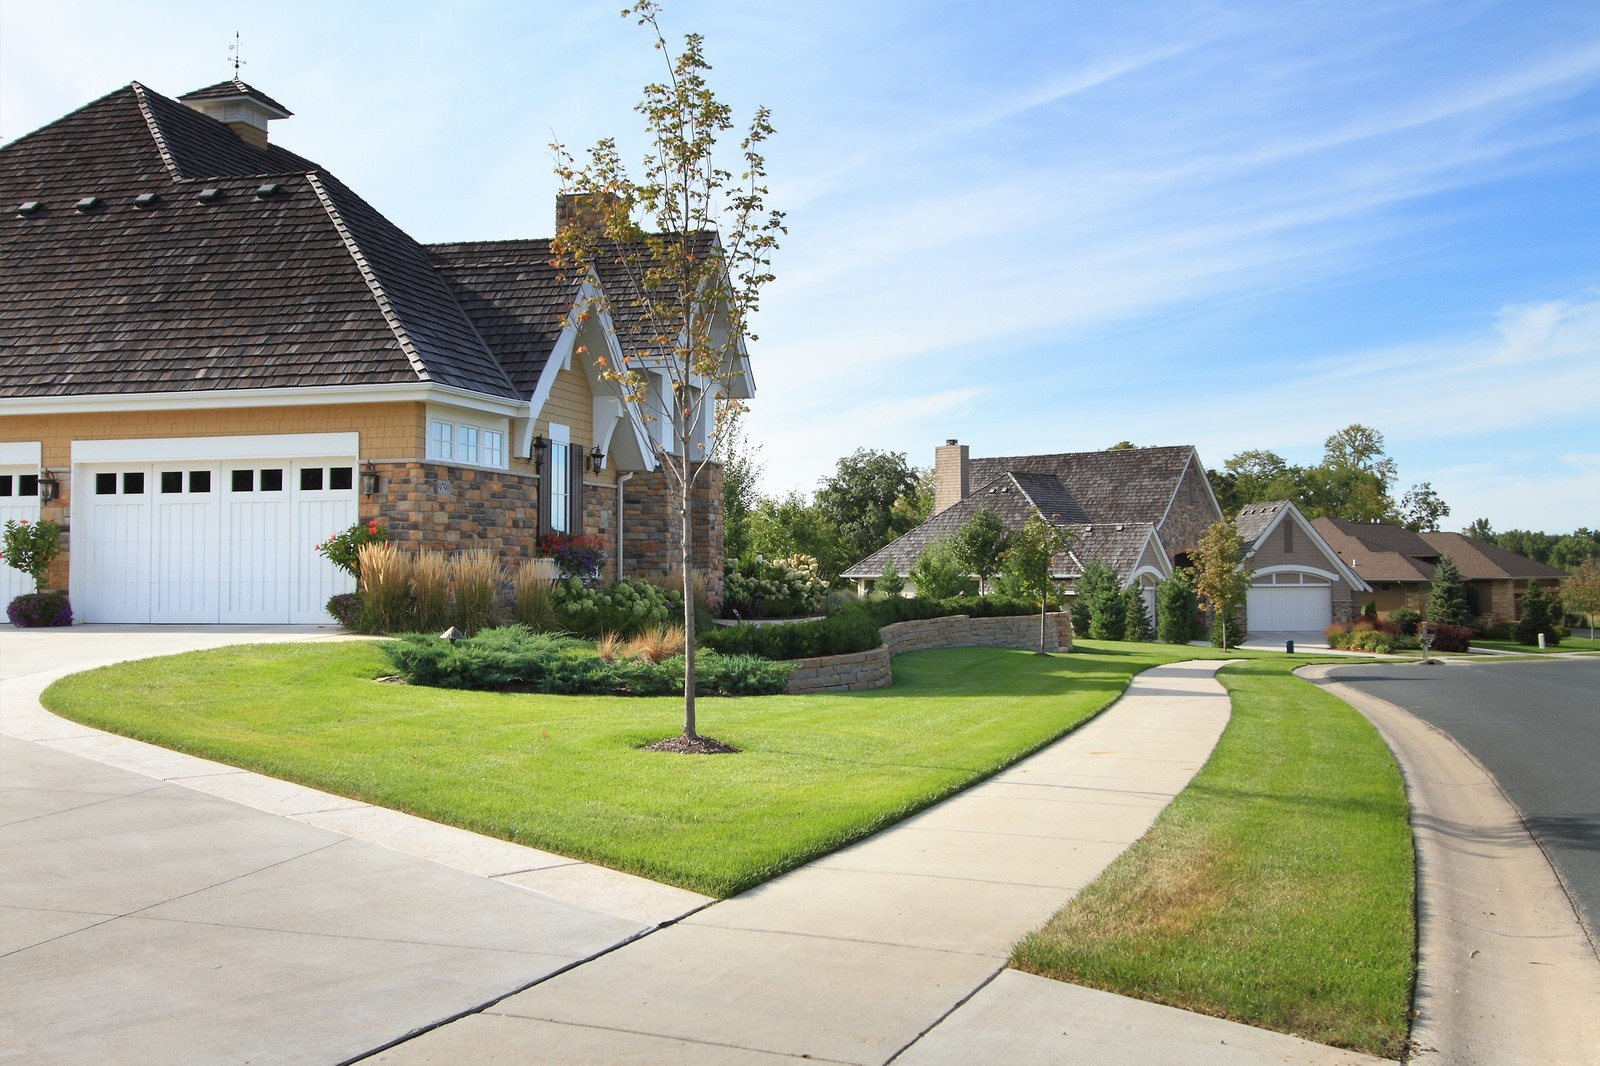 Real Estate Photography - 9627 Sky Lane, Eden Prairie, MN, 55347 - Front View